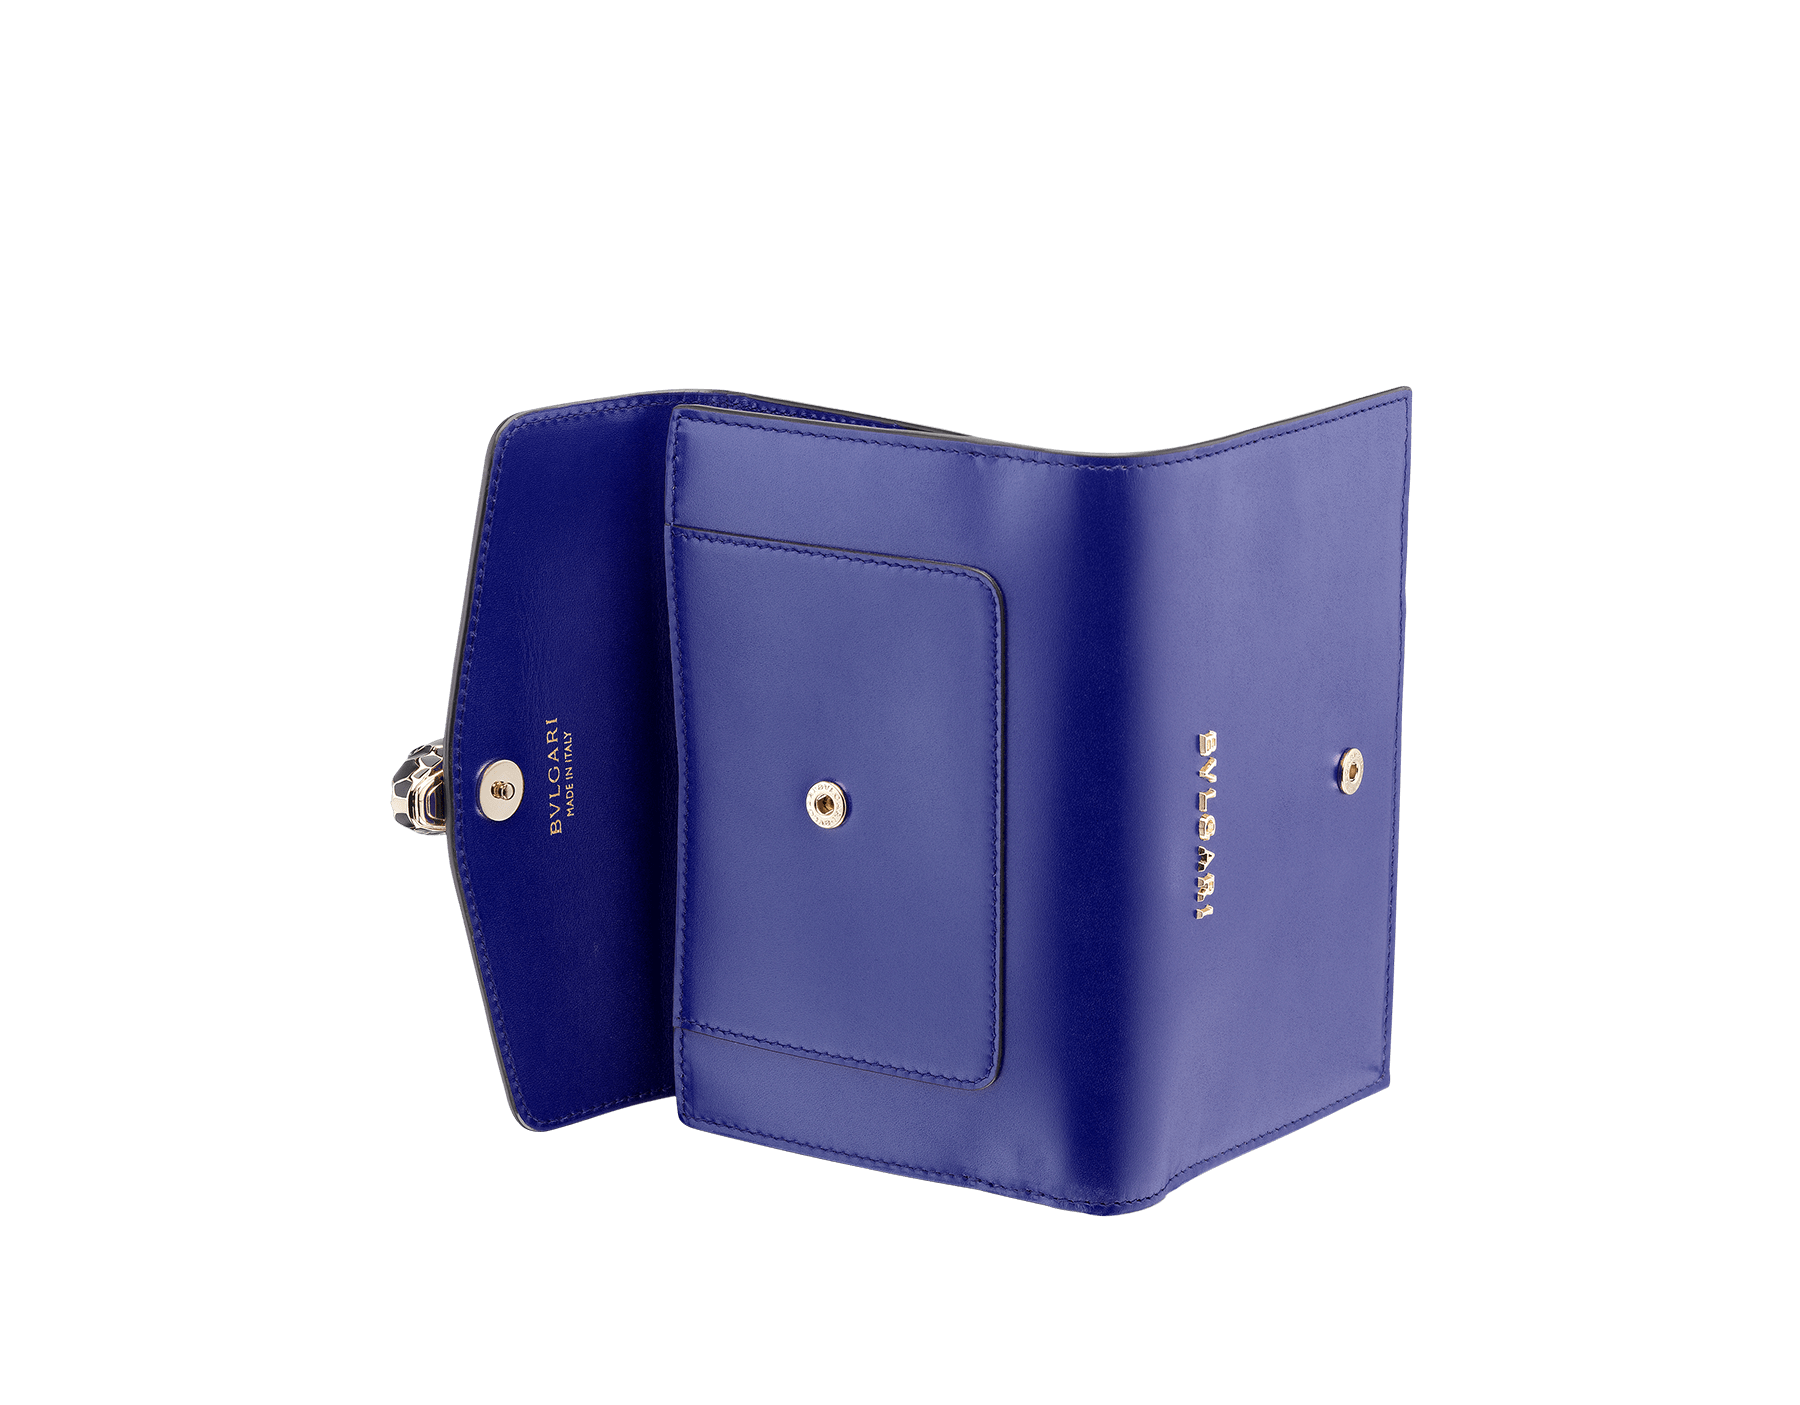 Compact pochette in royal sapphire calf leather, teal topaz calf leather and plum amethyst nappa lining. Brass light gold plated Serpenti head stud closure with green malachite eyes. SEA-COMPPOCHETTE image 3